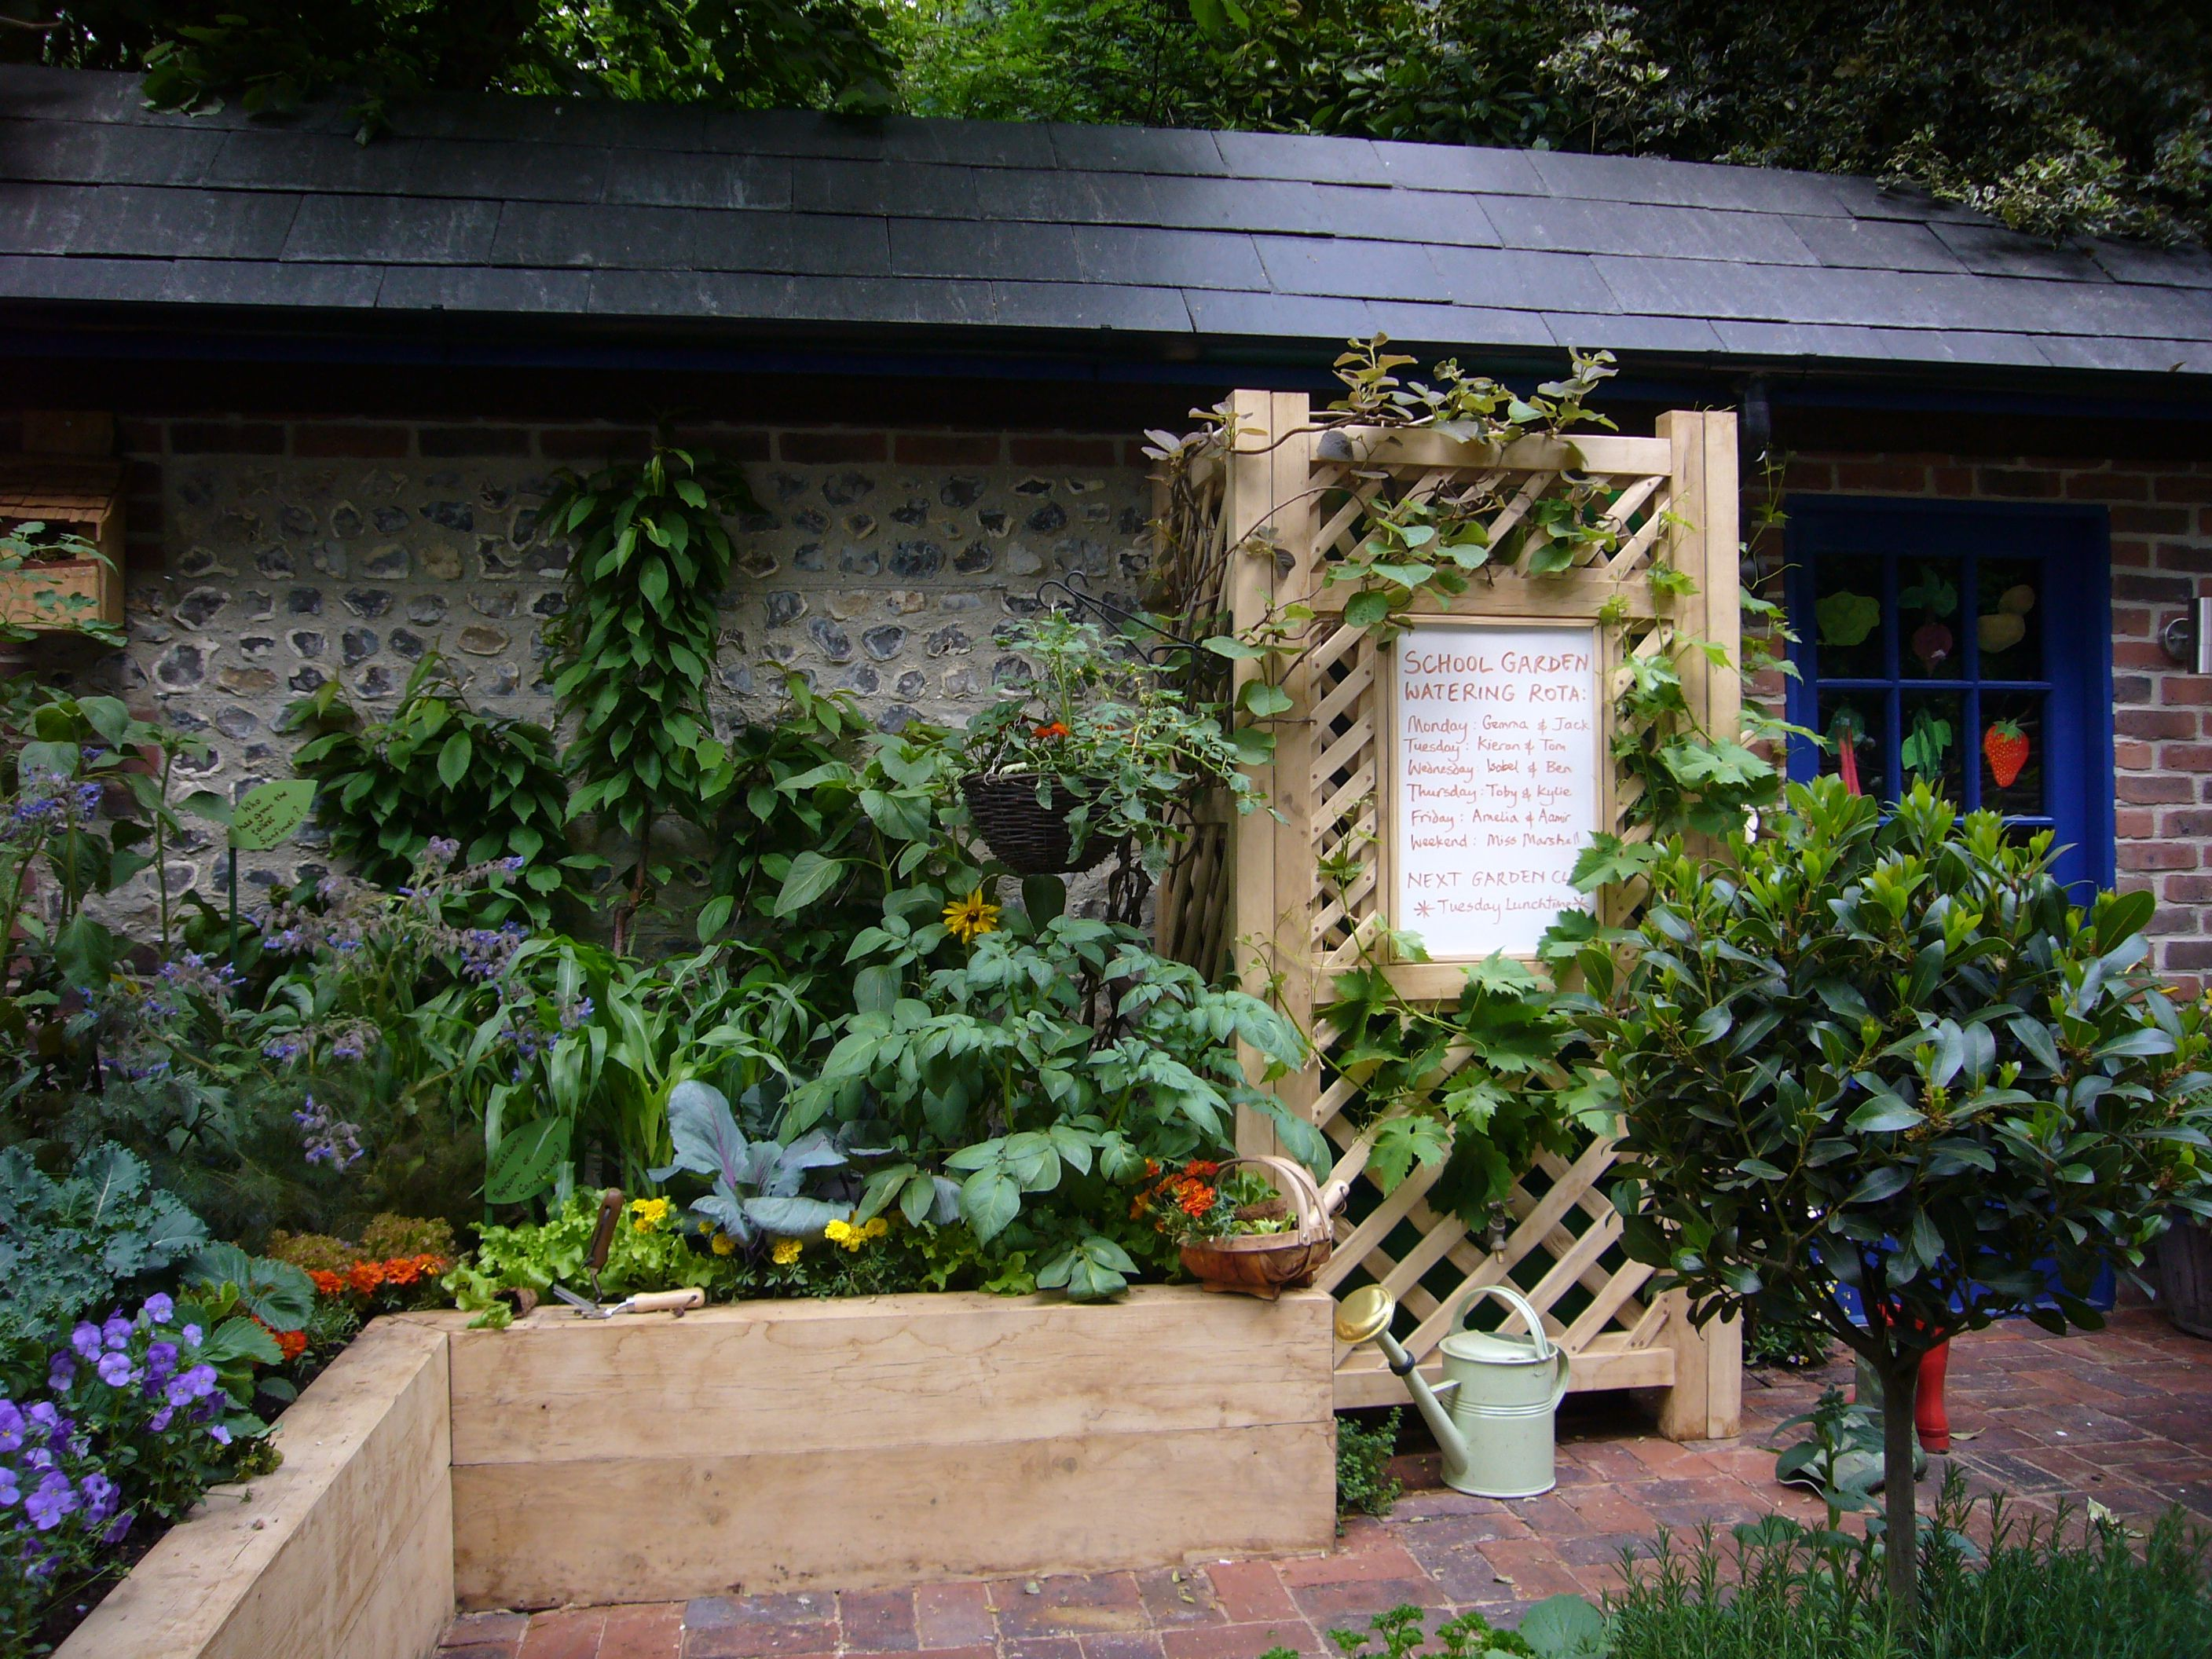 School Garden | School Garden | Pinterest | School, Gardens and ...